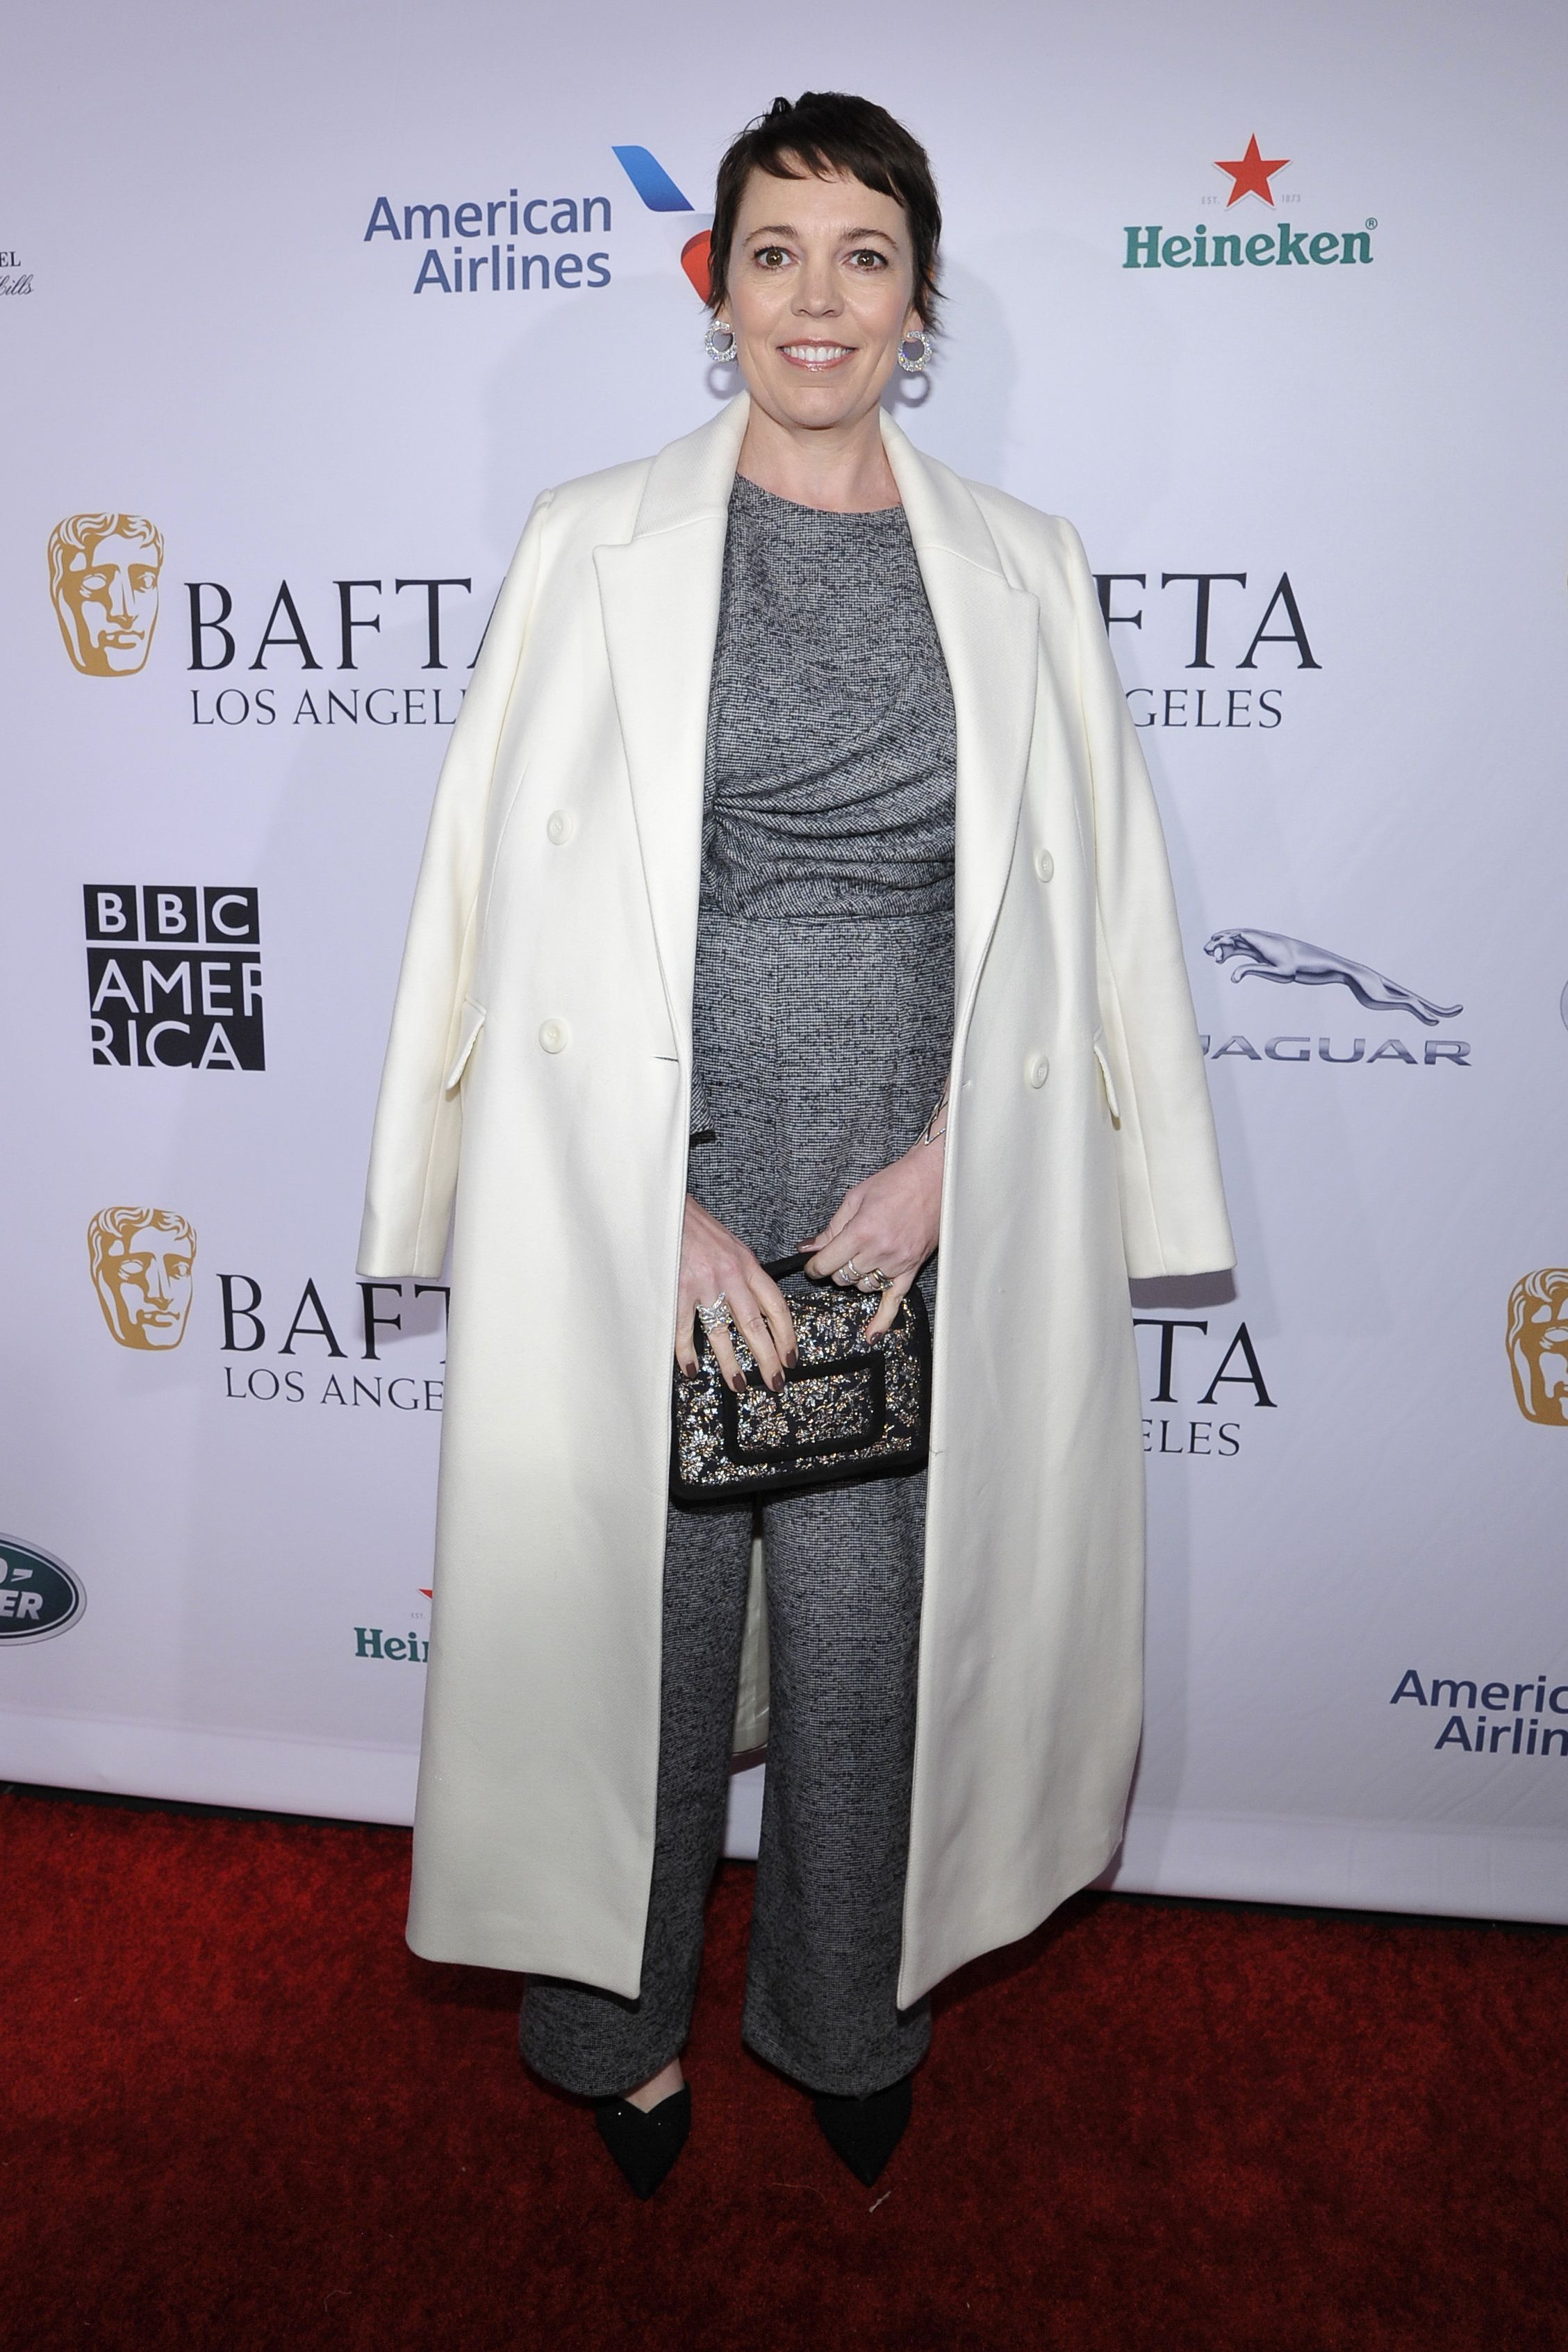 Colman wore an oversized white coat over a gray jumpsuit to the BAFTA Los Angeles Tea Party. The actress paired the look with an embroidered clutch and statement earrings.